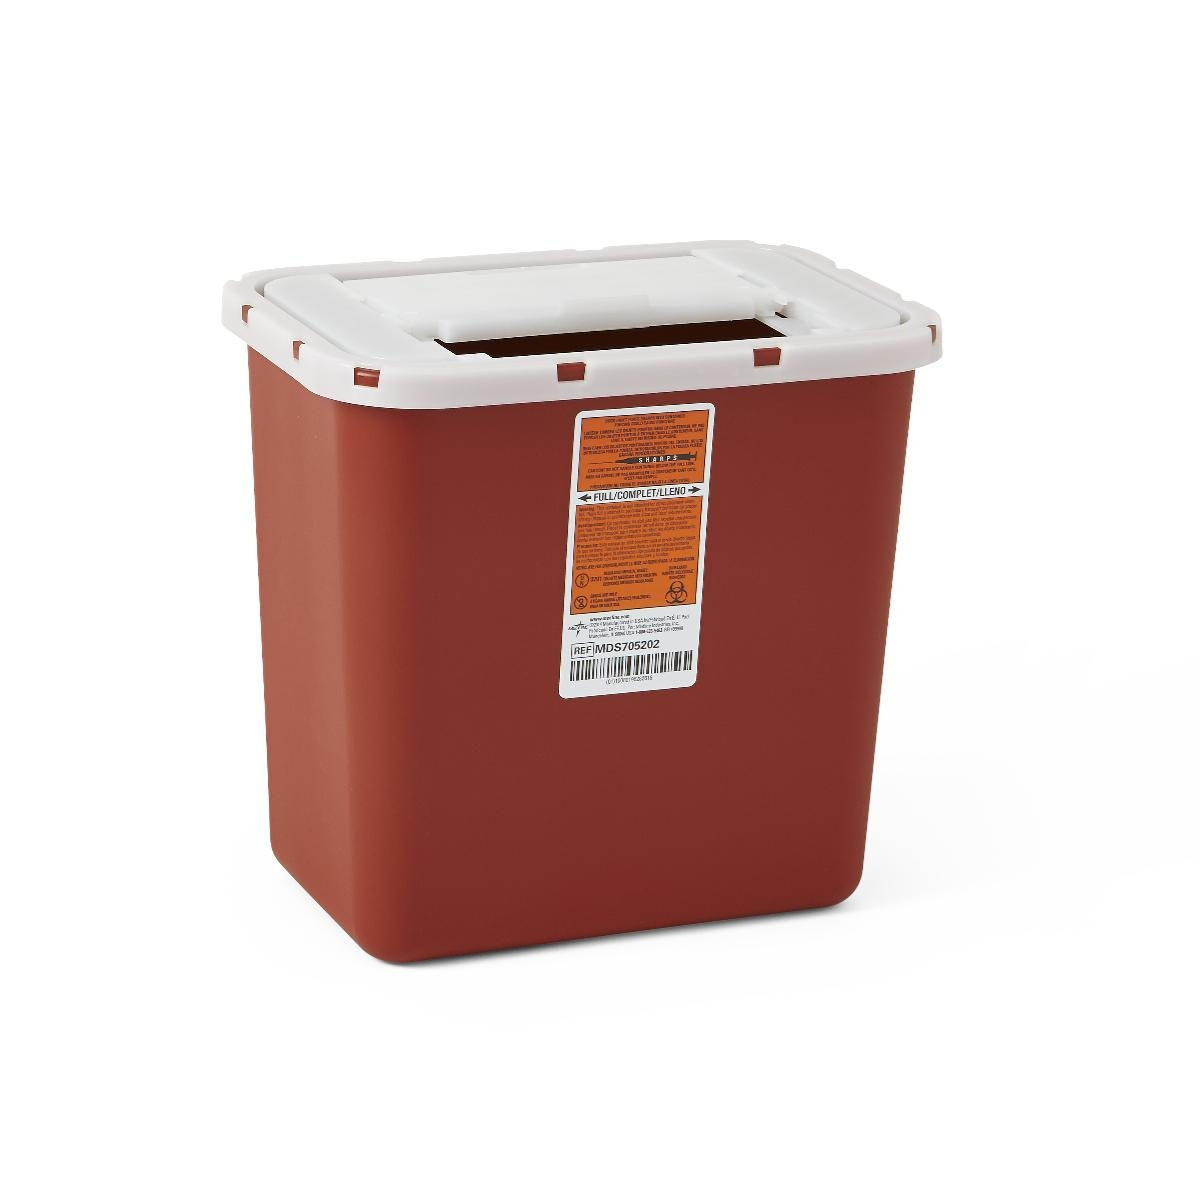 Nursing Supplies & Patient Care Sharps Containers - Mds705202h - Container Sharps 2 Gal. Red Wall/free MDS705202H